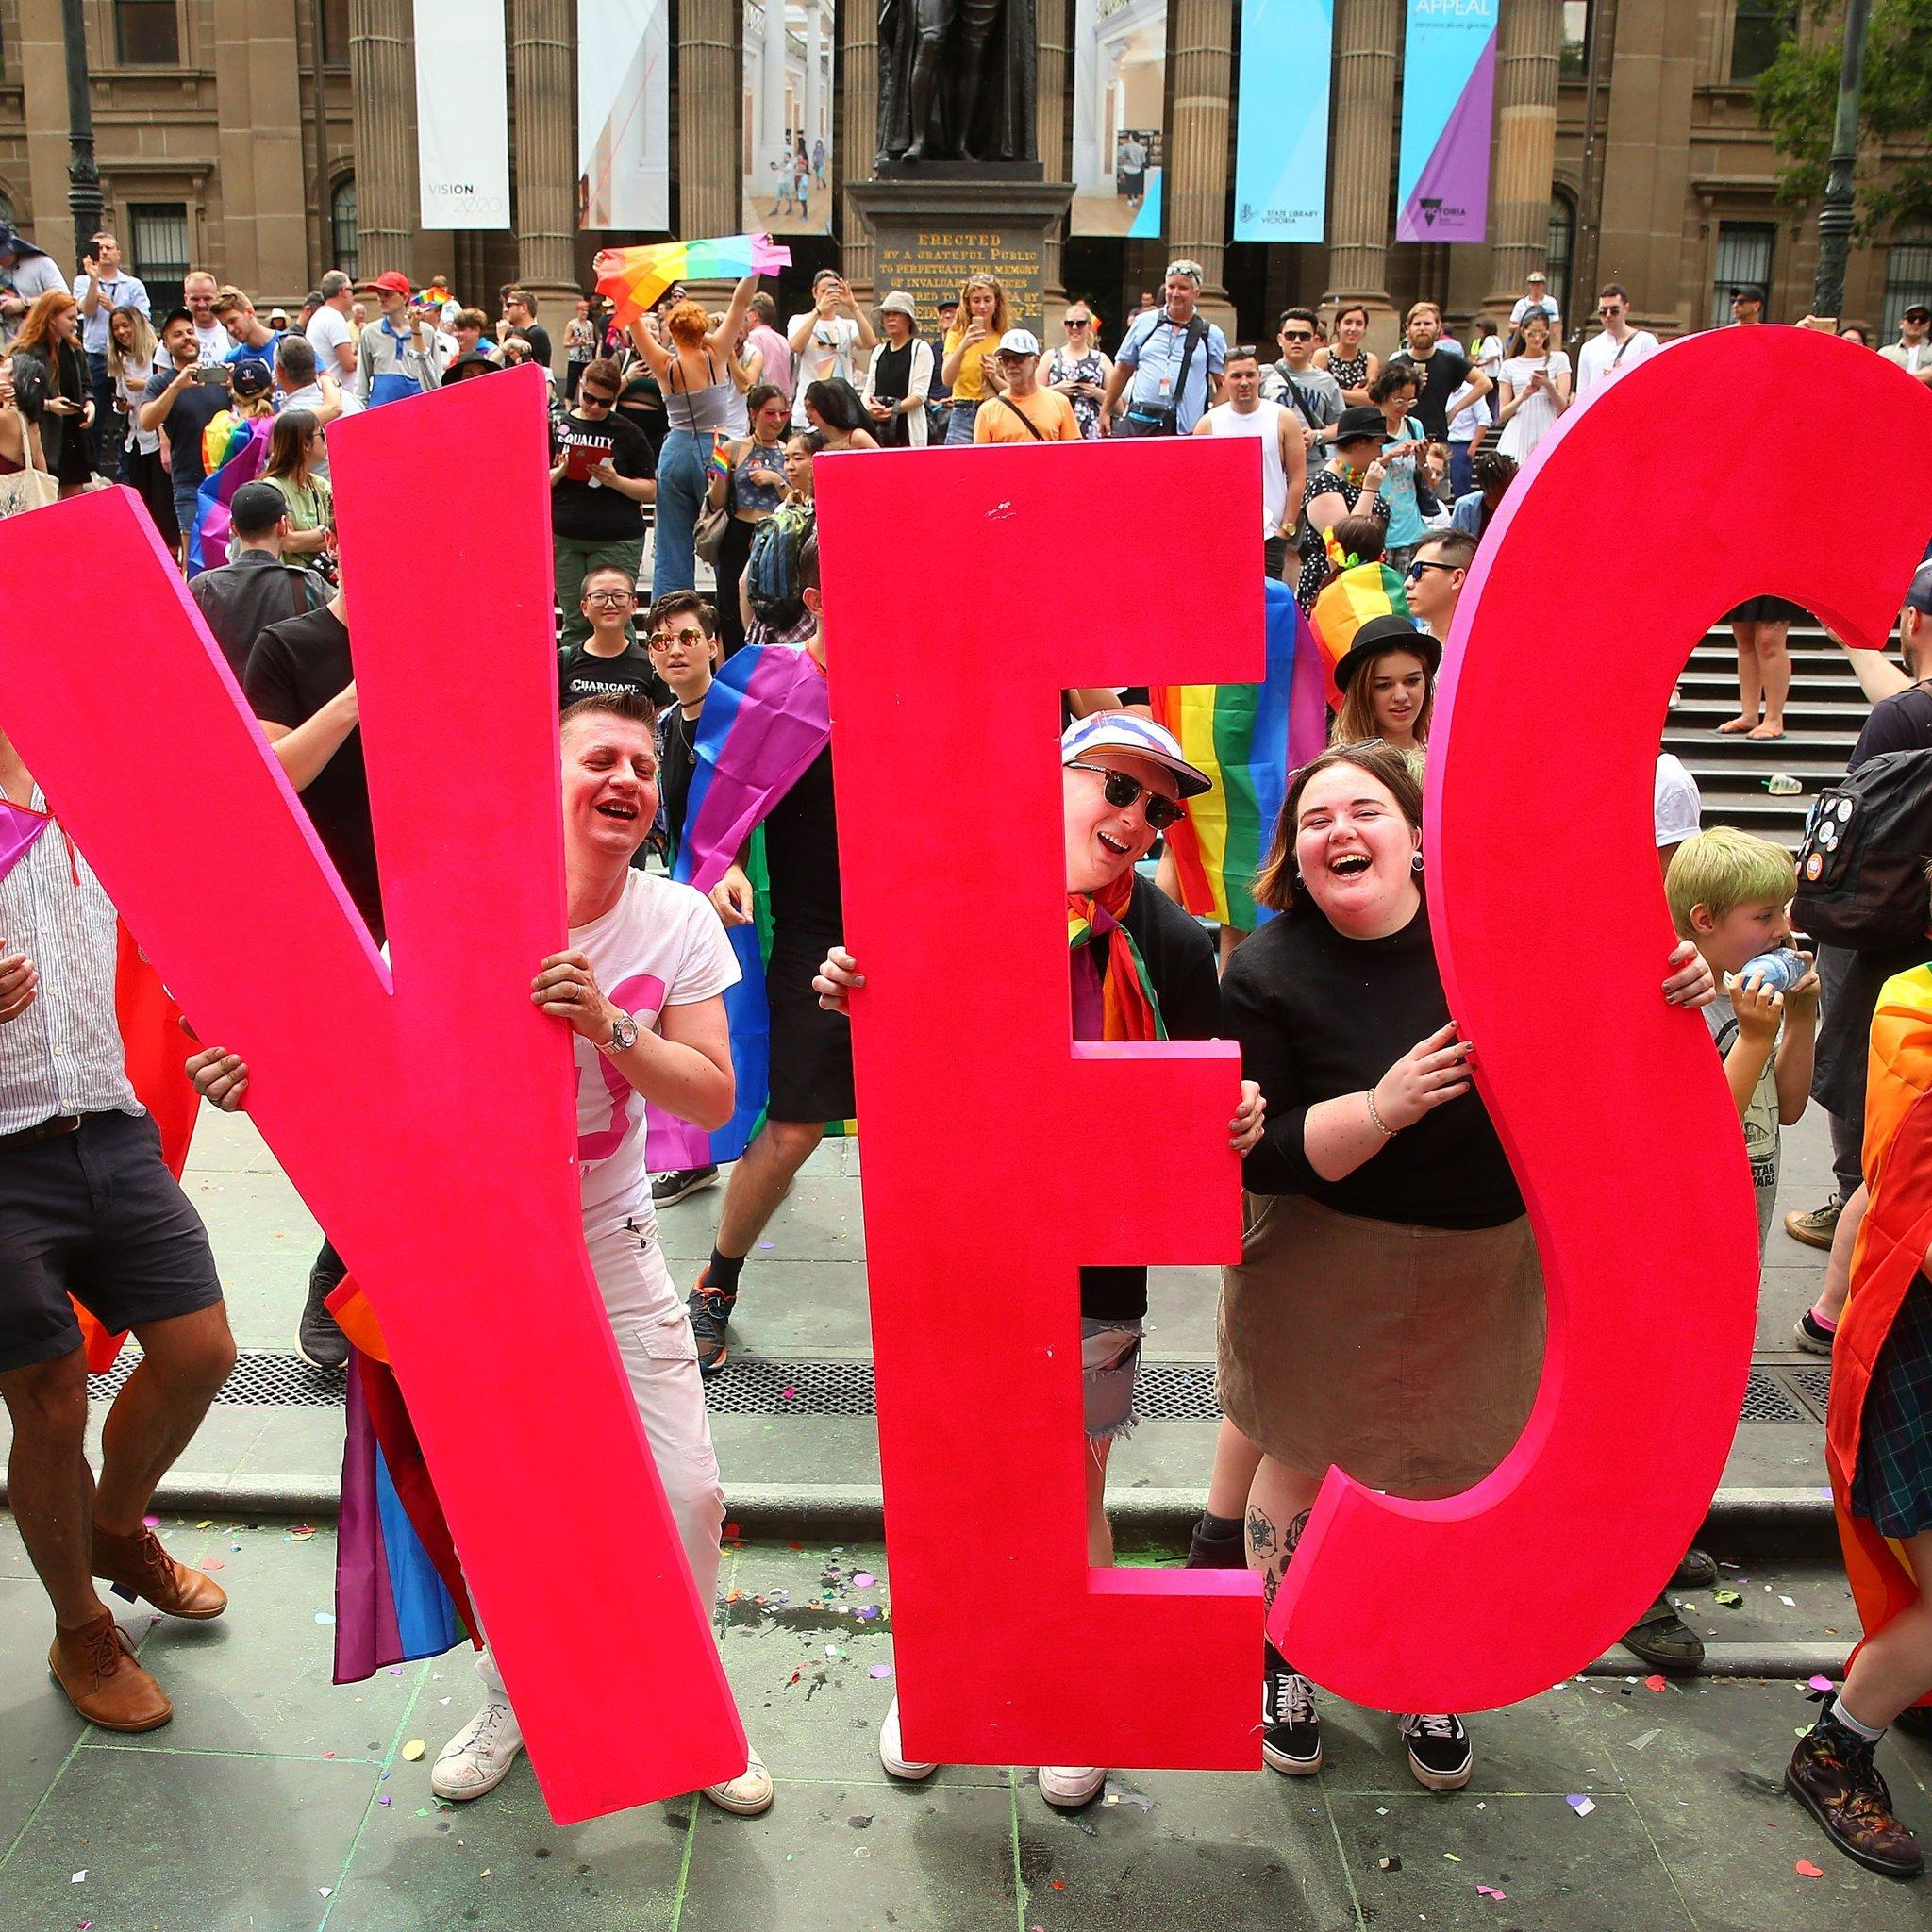 should same sex marriage be legalized in australia essay Sydney, australia — australia's parliament voted overwhelmingly to legalize same-sex marriage on thursday, overcoming years of conservative resistance to enact change that the public had made.